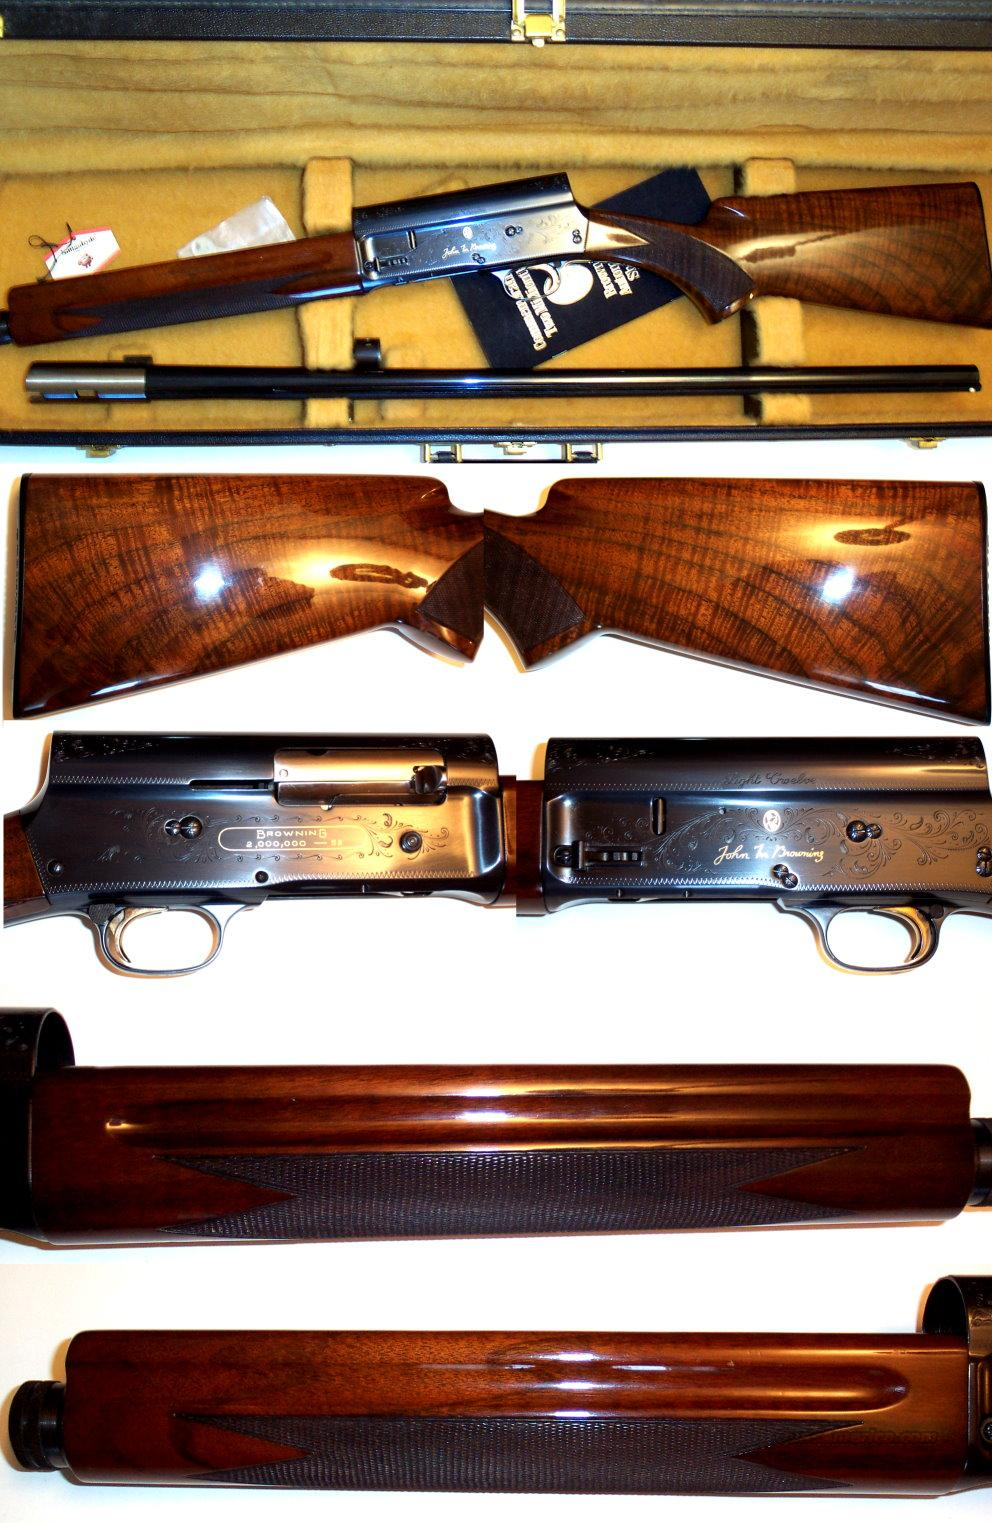 Browning Belgium A5 2 millionth #52  Guns > Shotguns > Browning Shotguns > Autoloaders > Hunting